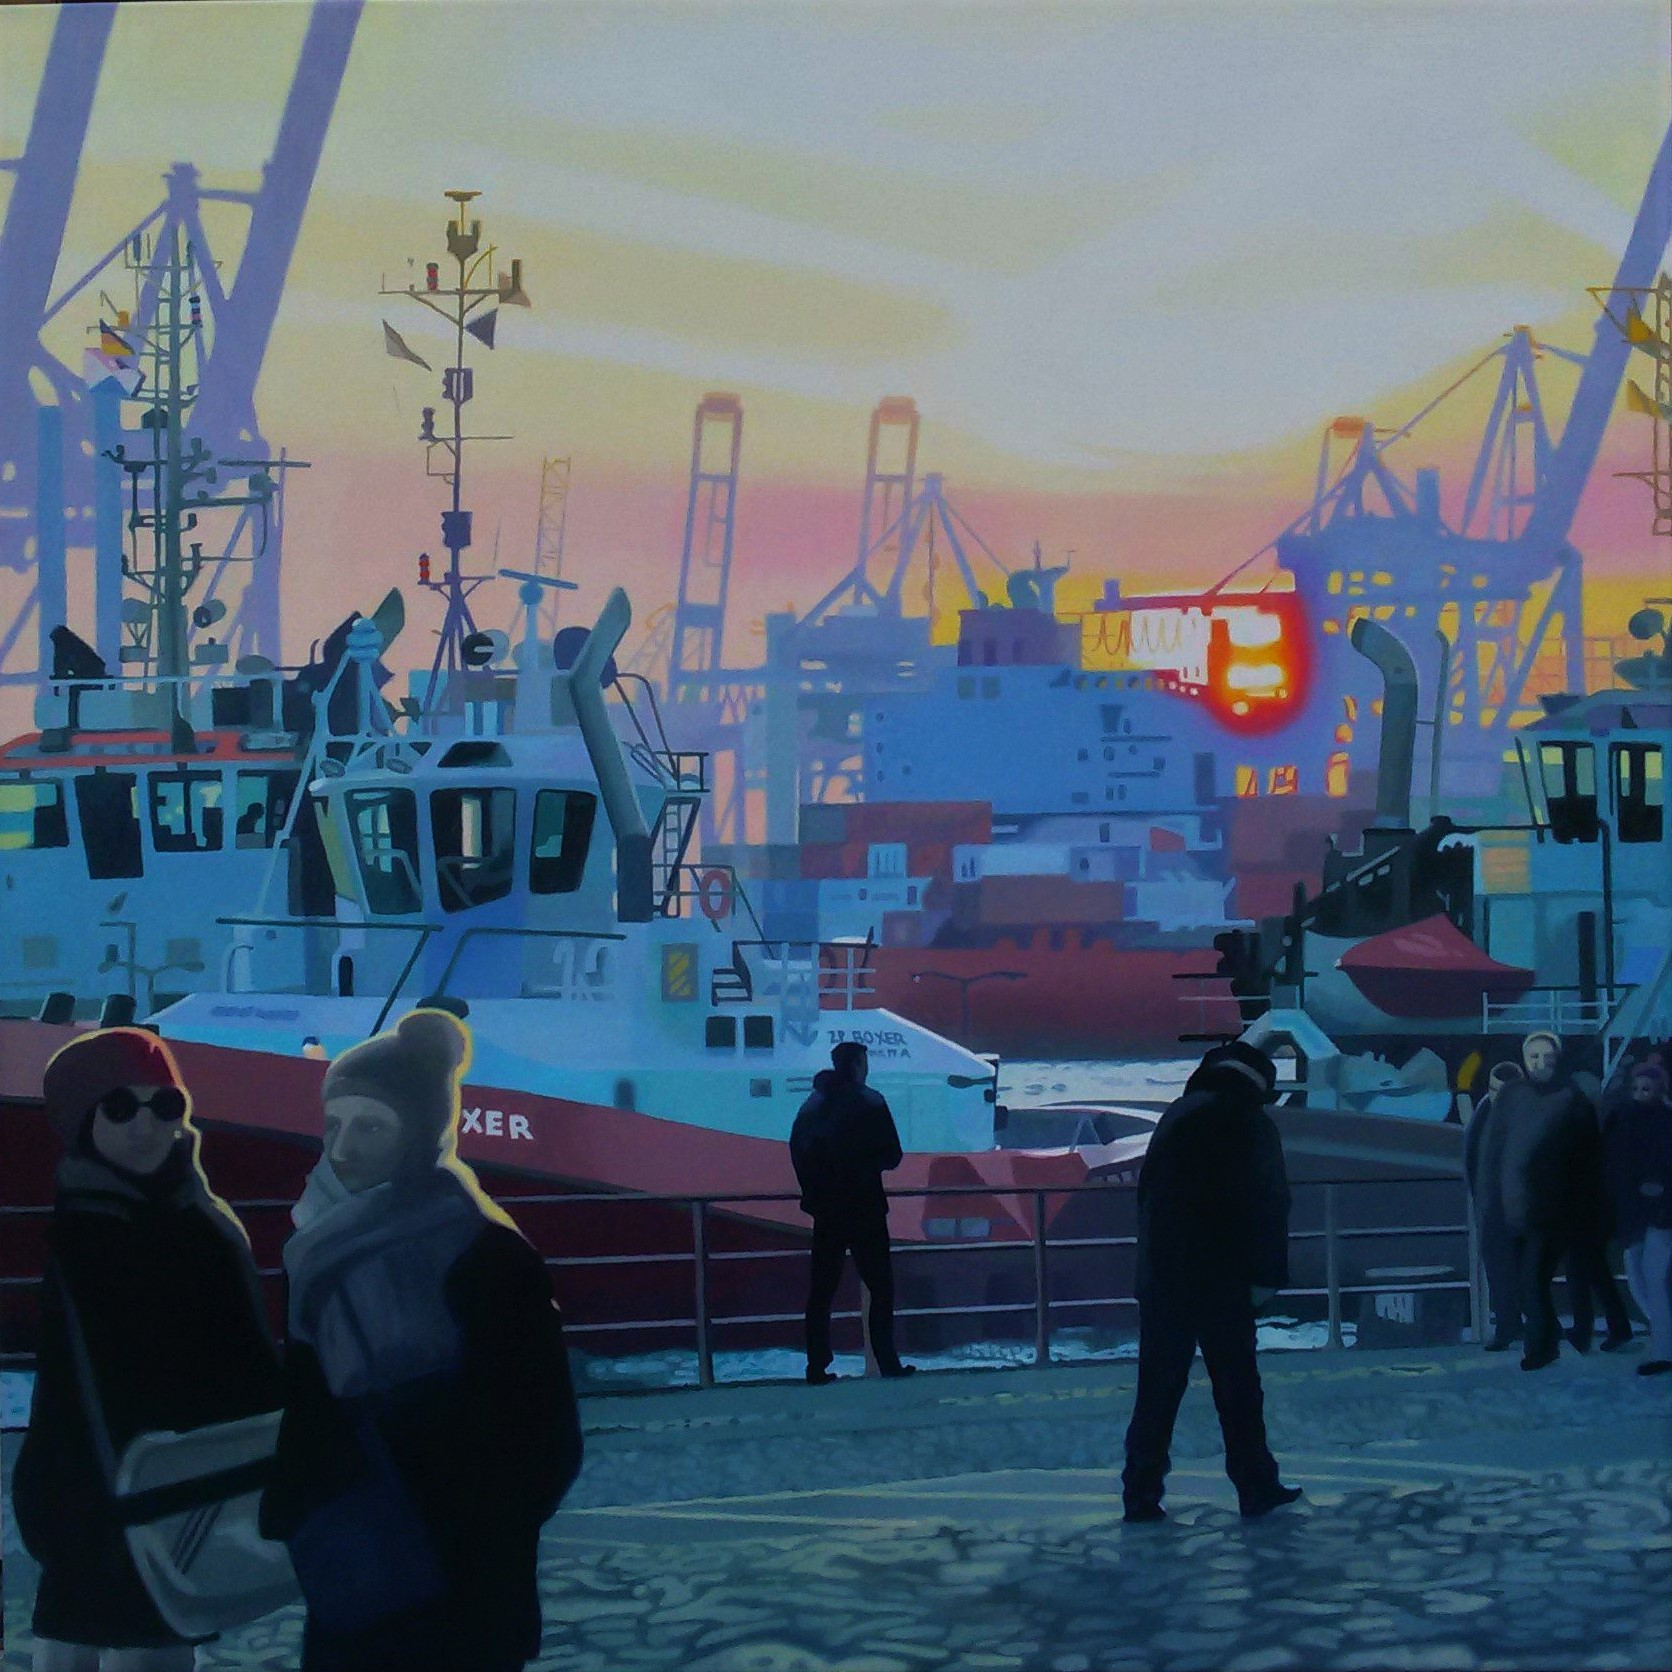 Schlepper am Hafen, Oil on Canvas, 100 cm x 100 cm